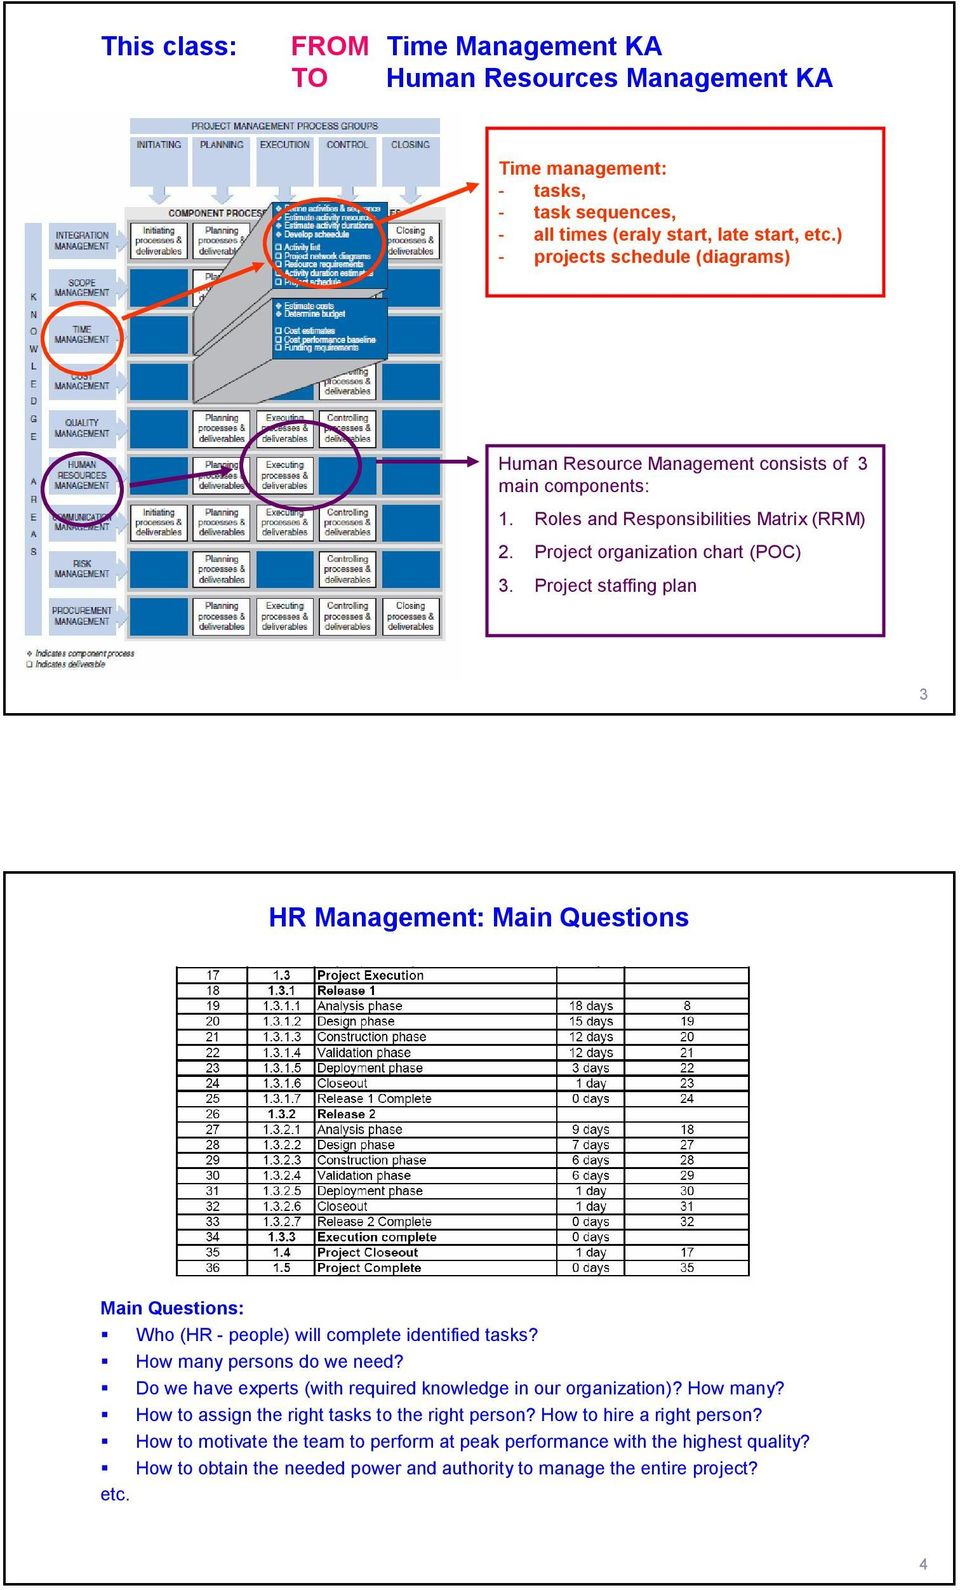 Project staffing plan 3 HR Management: Main Questions Main Questions: Who (HR - people) will complete identified tasks? How many persons do we need?